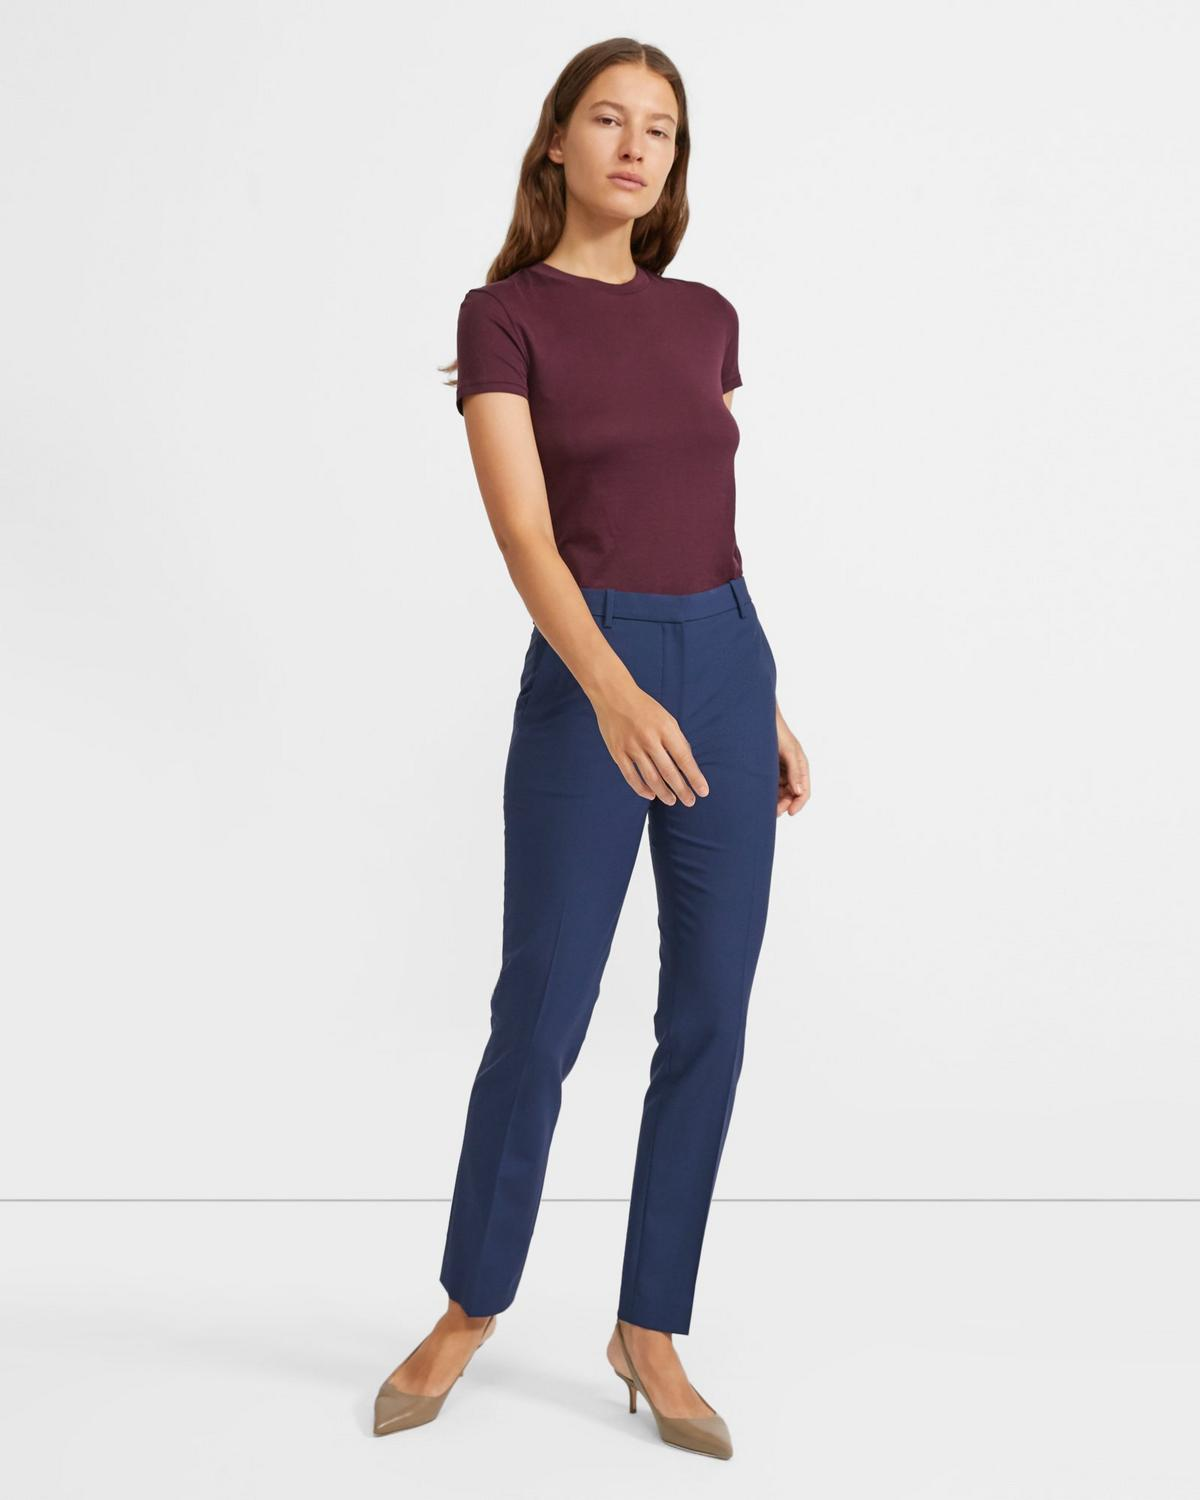 Treeca Full Length Pant in Good Wool